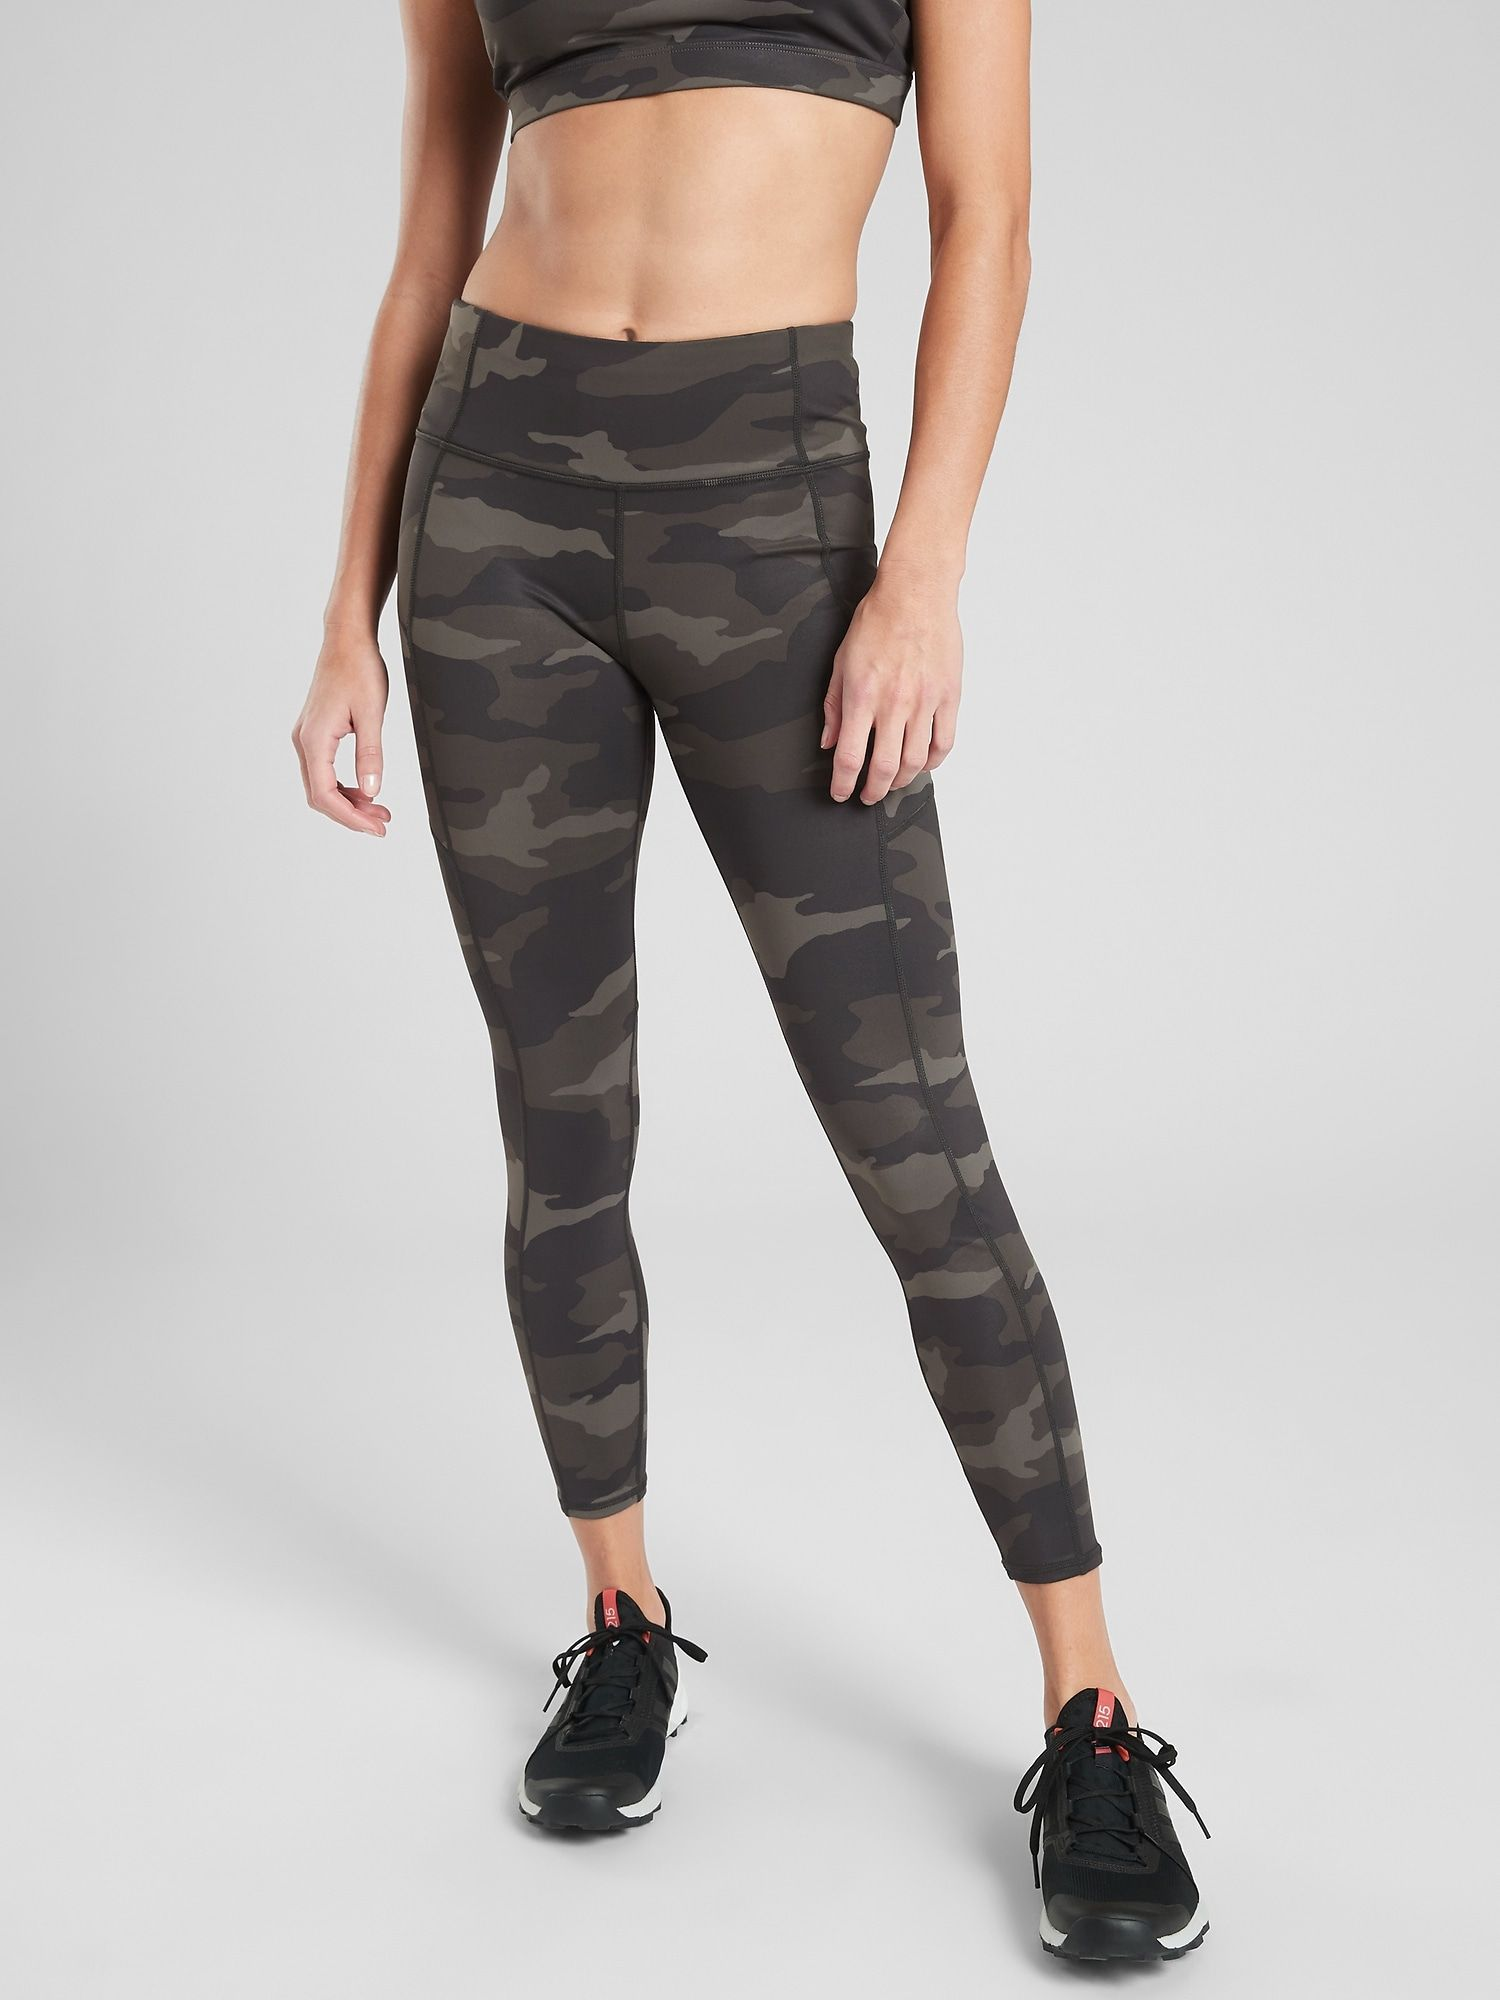 4aceef2d36c500 Camo Contender 7/8 Tight in Powerlift in 2019 | Athleisure & Fitness ...